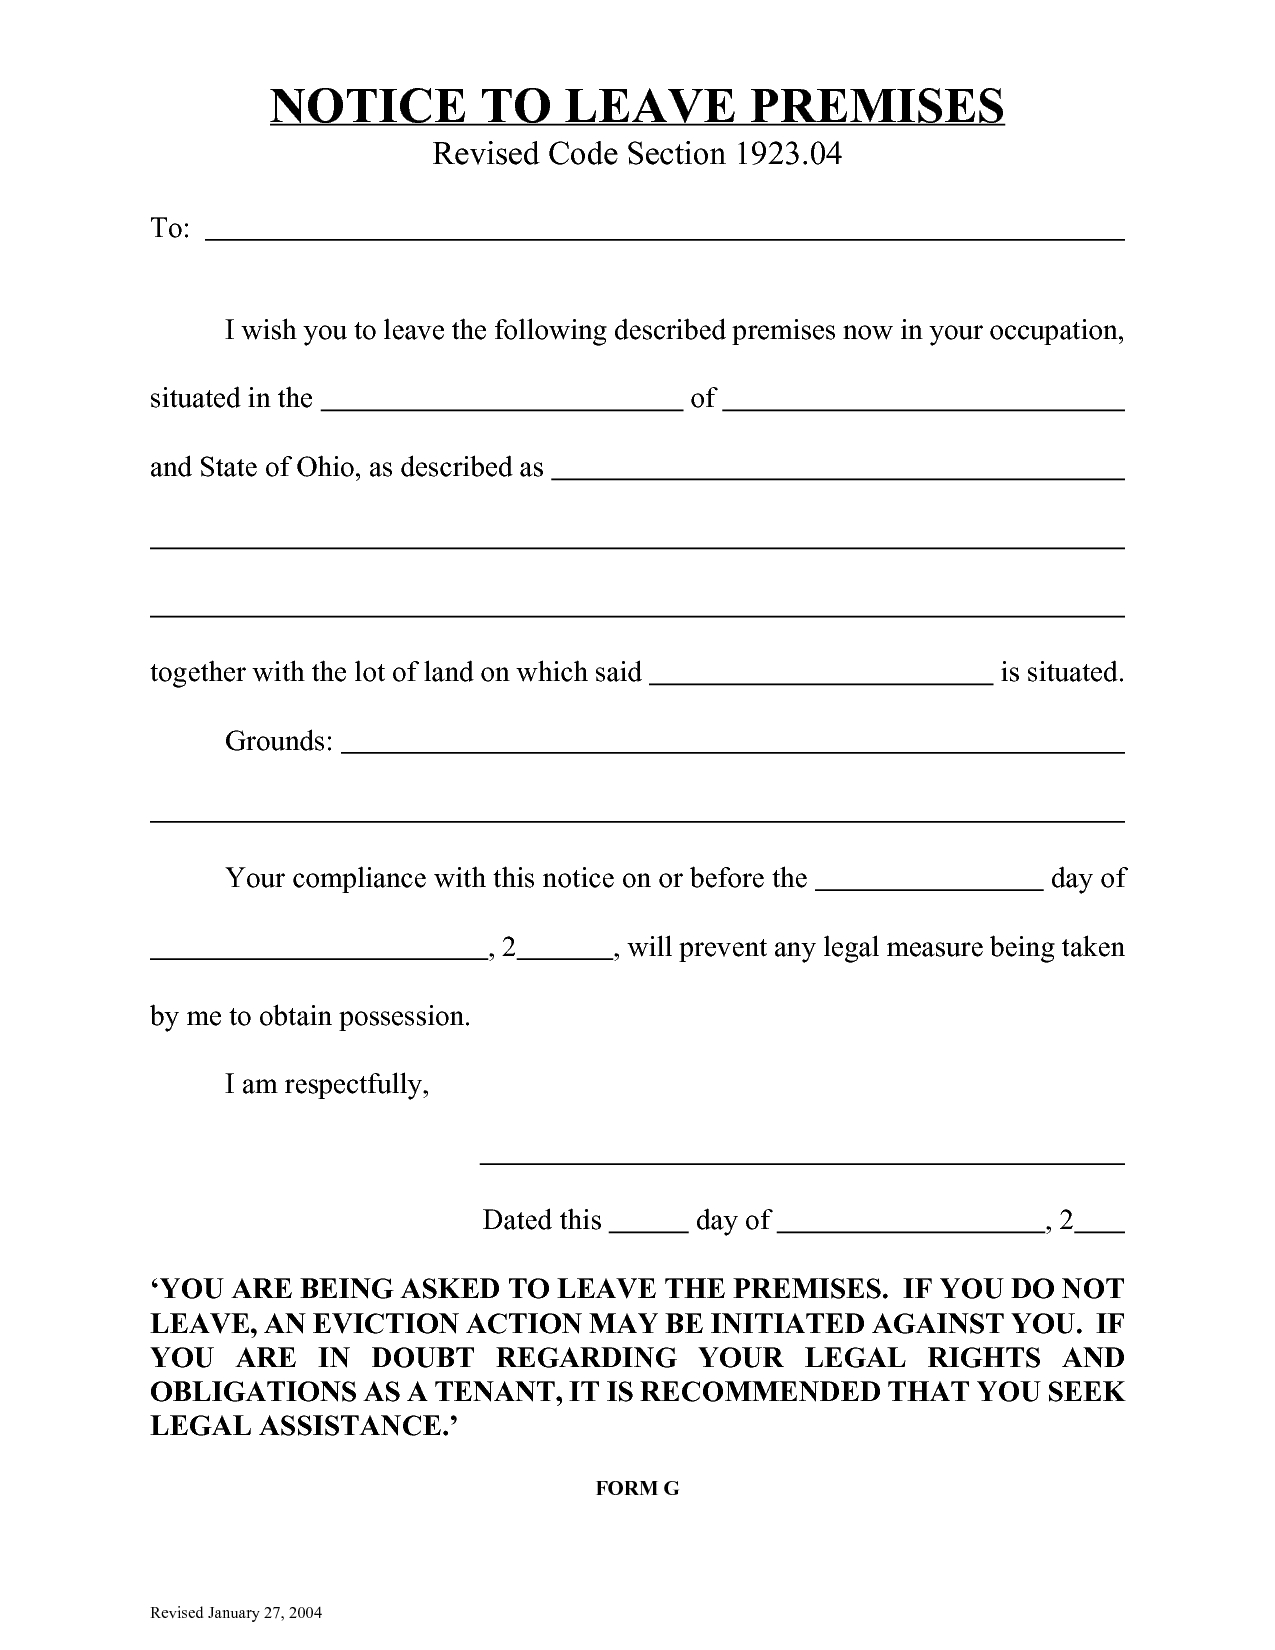 020 Template Ideas Free Eviction Notice Templates Day Florida 500904 - Free Printable Eviction Notice Ohio